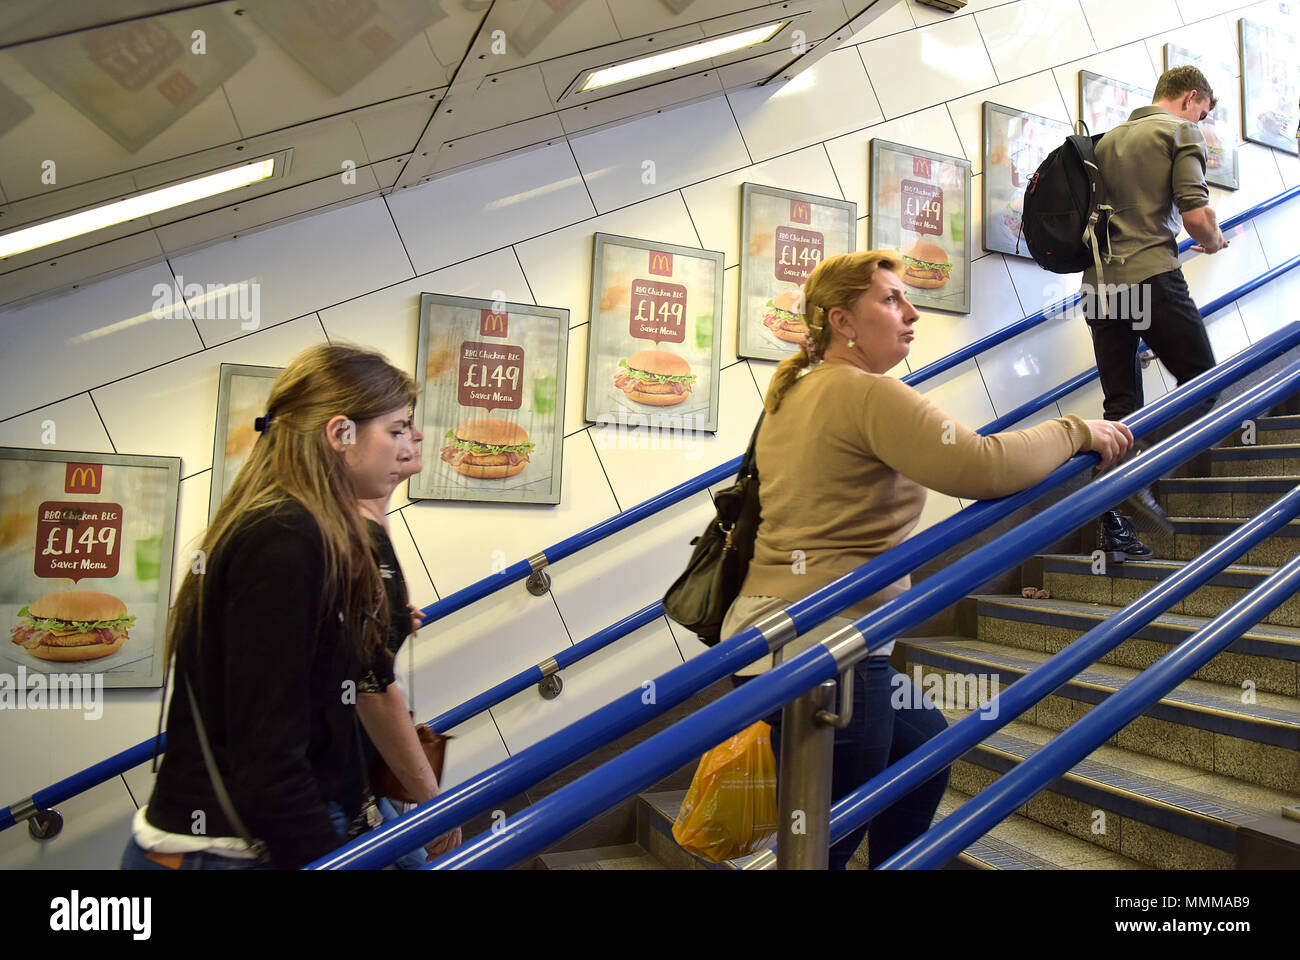 People walk past advertising hoardings promoting McDonalds BBQ Chicken burger in the Oxford Circus underground station in central London.  Junk food a - Stock Image